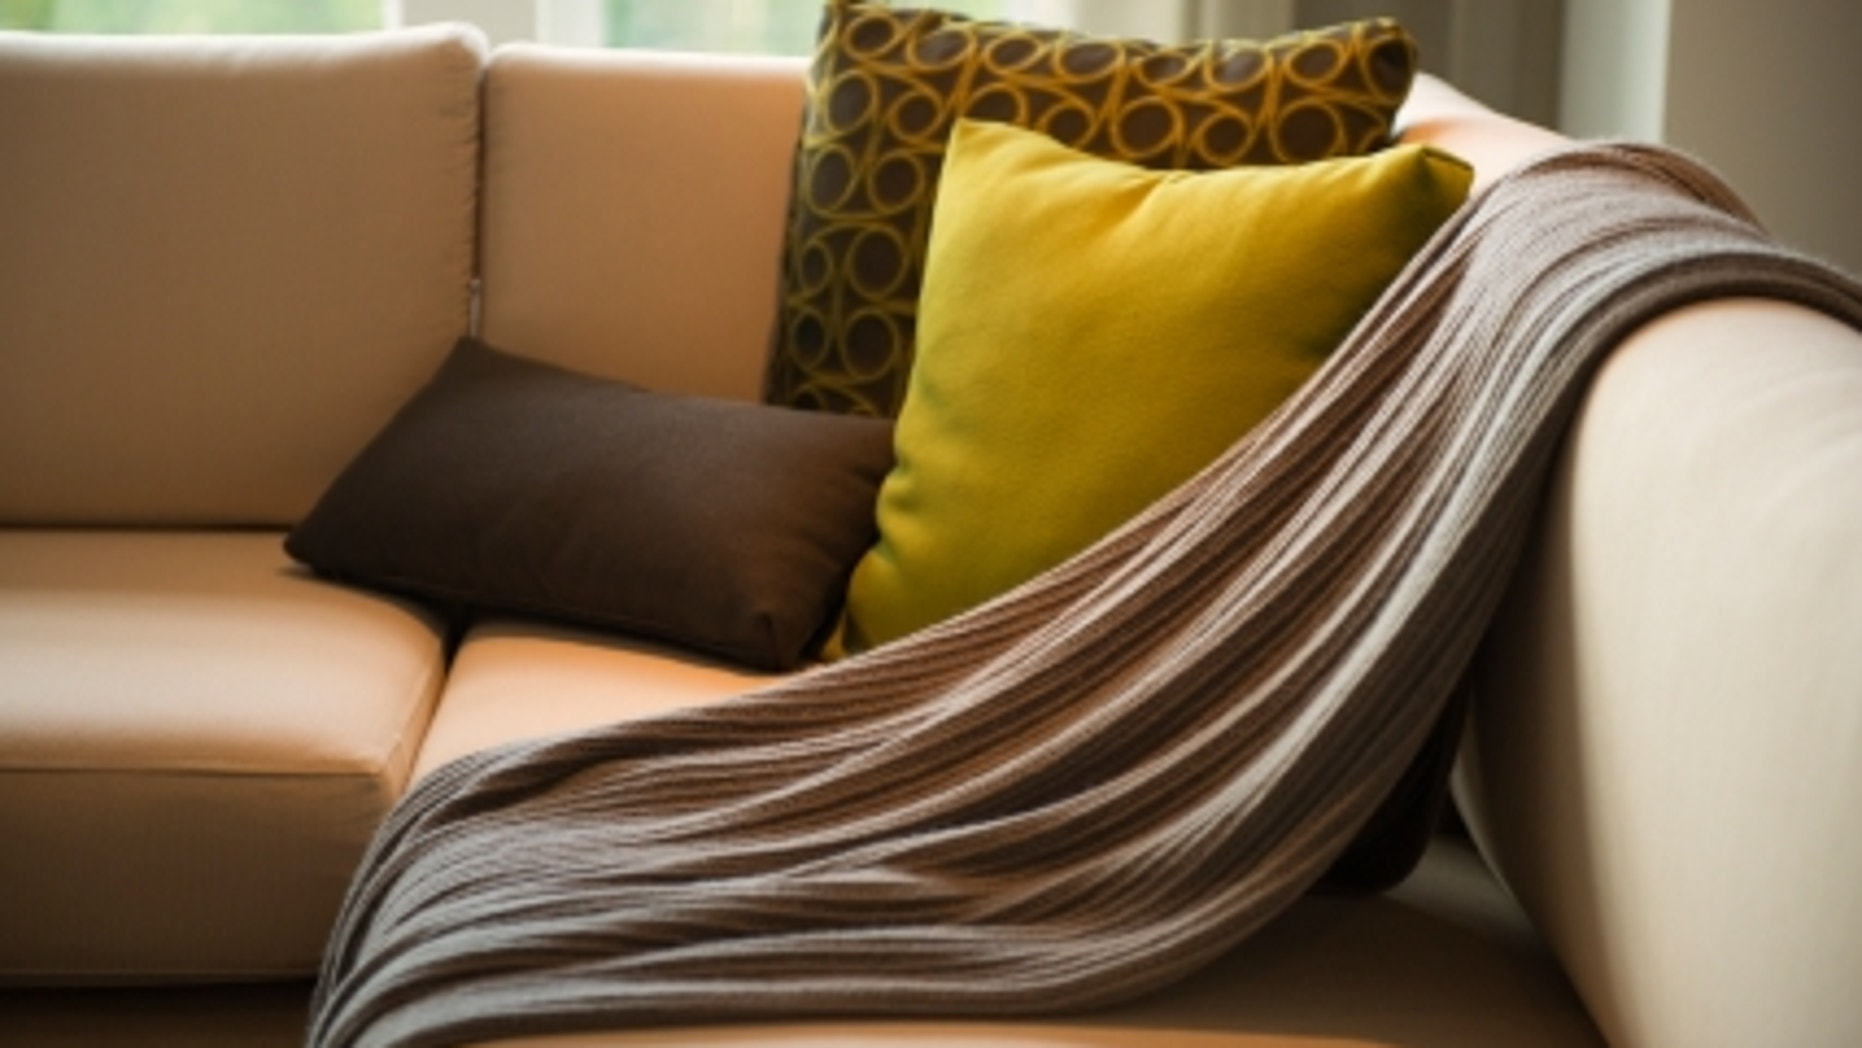 living room detail / for example a blanket / upon the sofa